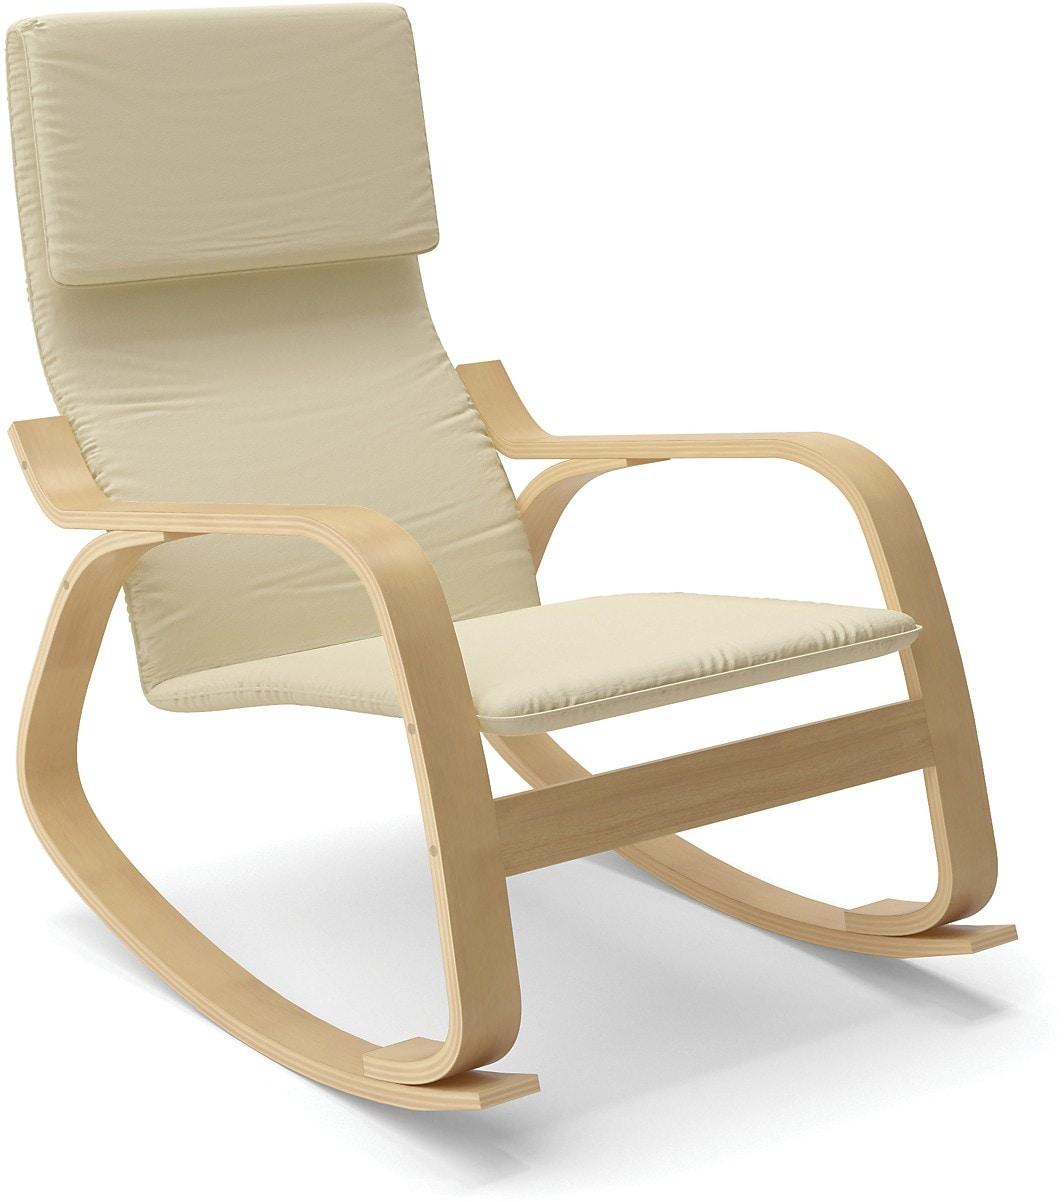 Volo contemporary rocking chair white united furniture - Modern white rocking chair ...